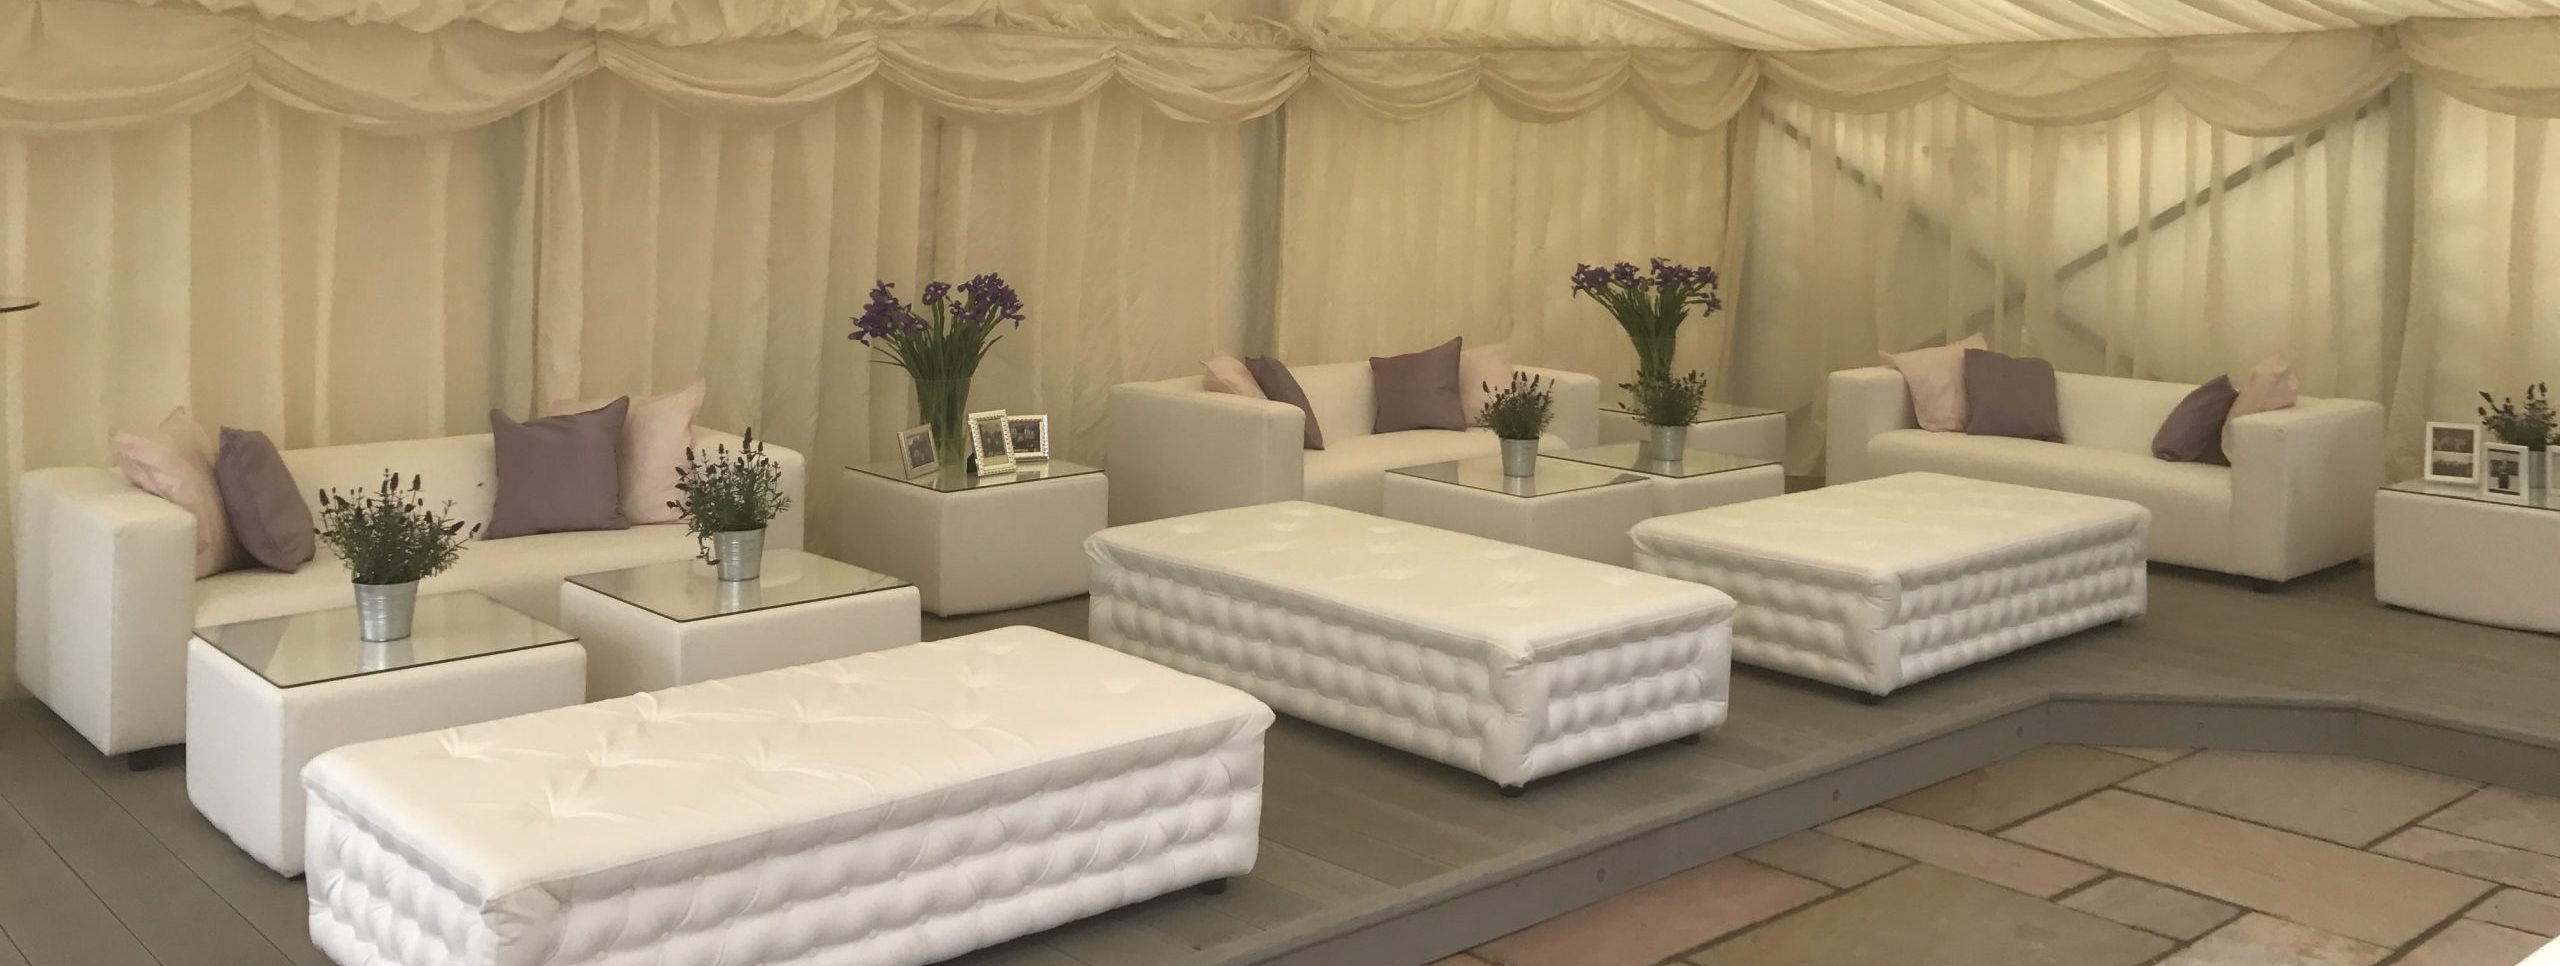 marquee furniture hire: chesterfield benches